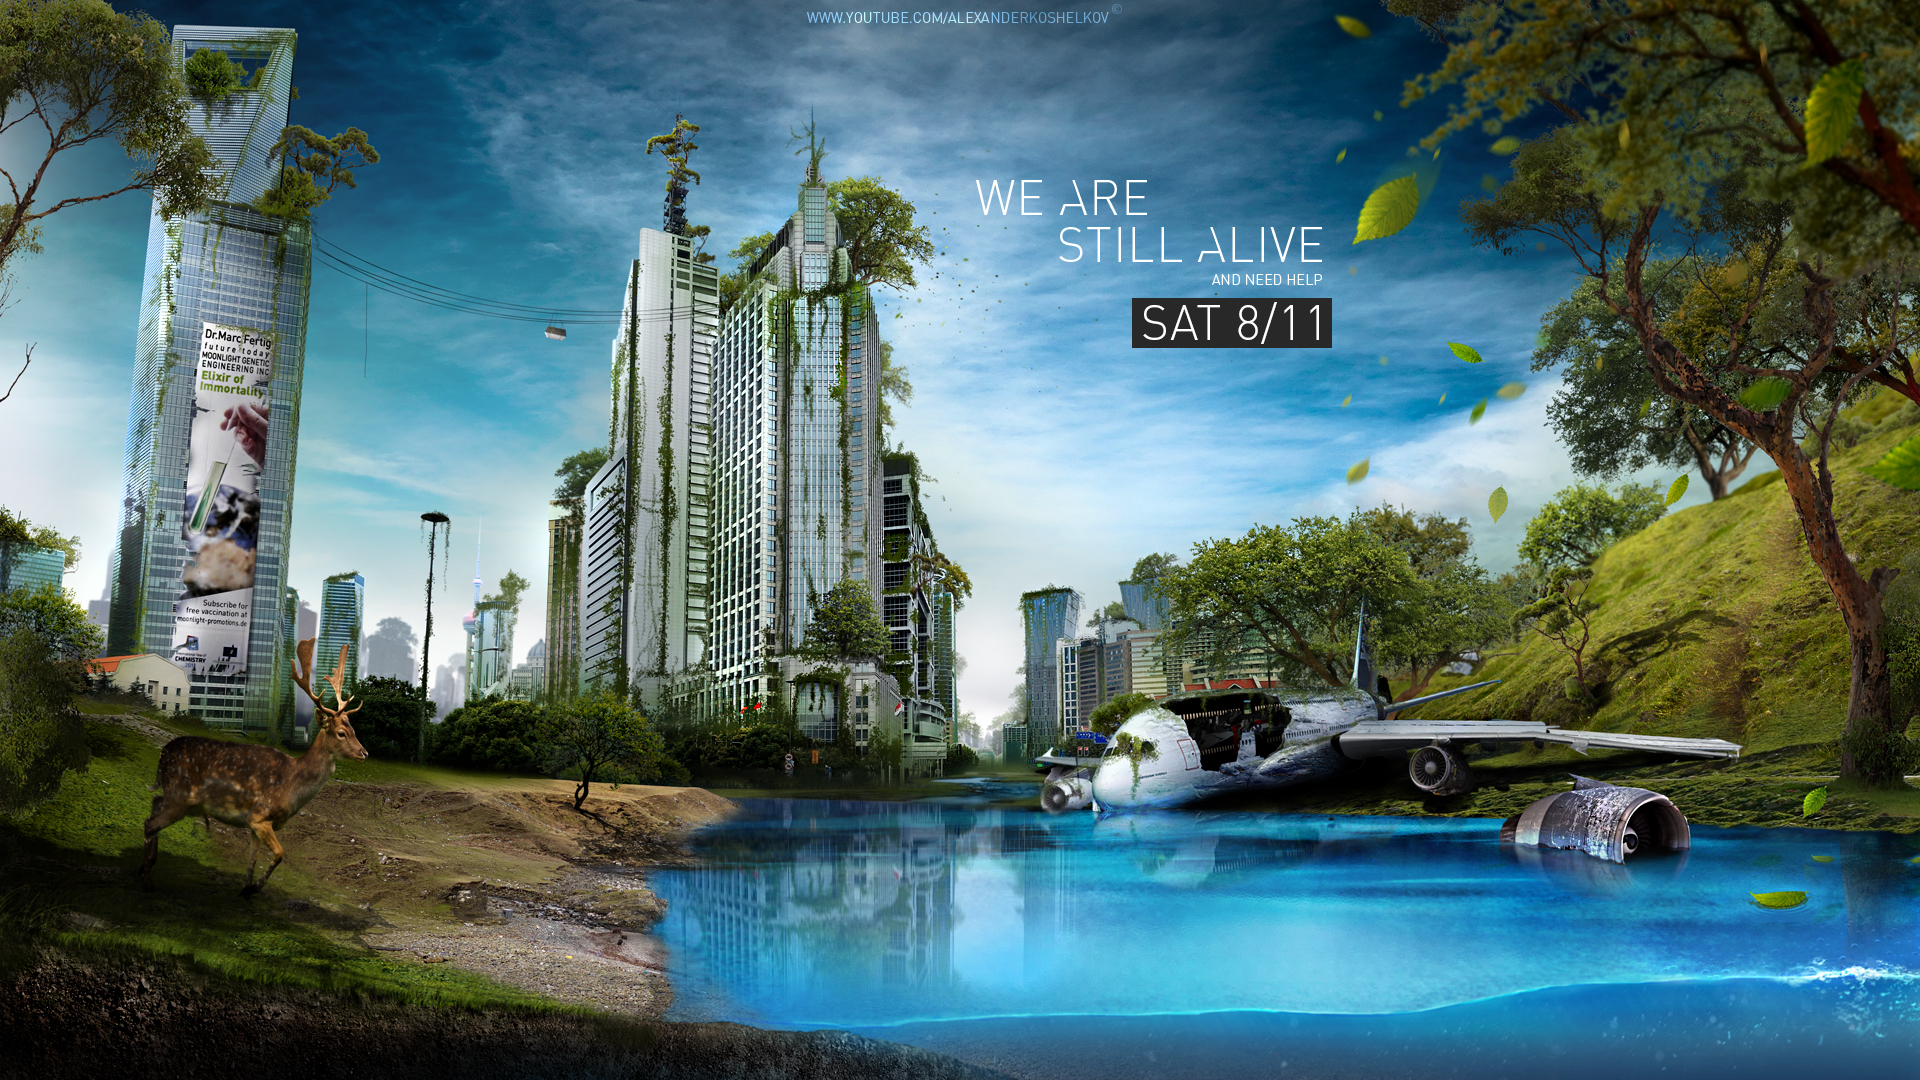 We Are Still Alive by Koshelkov